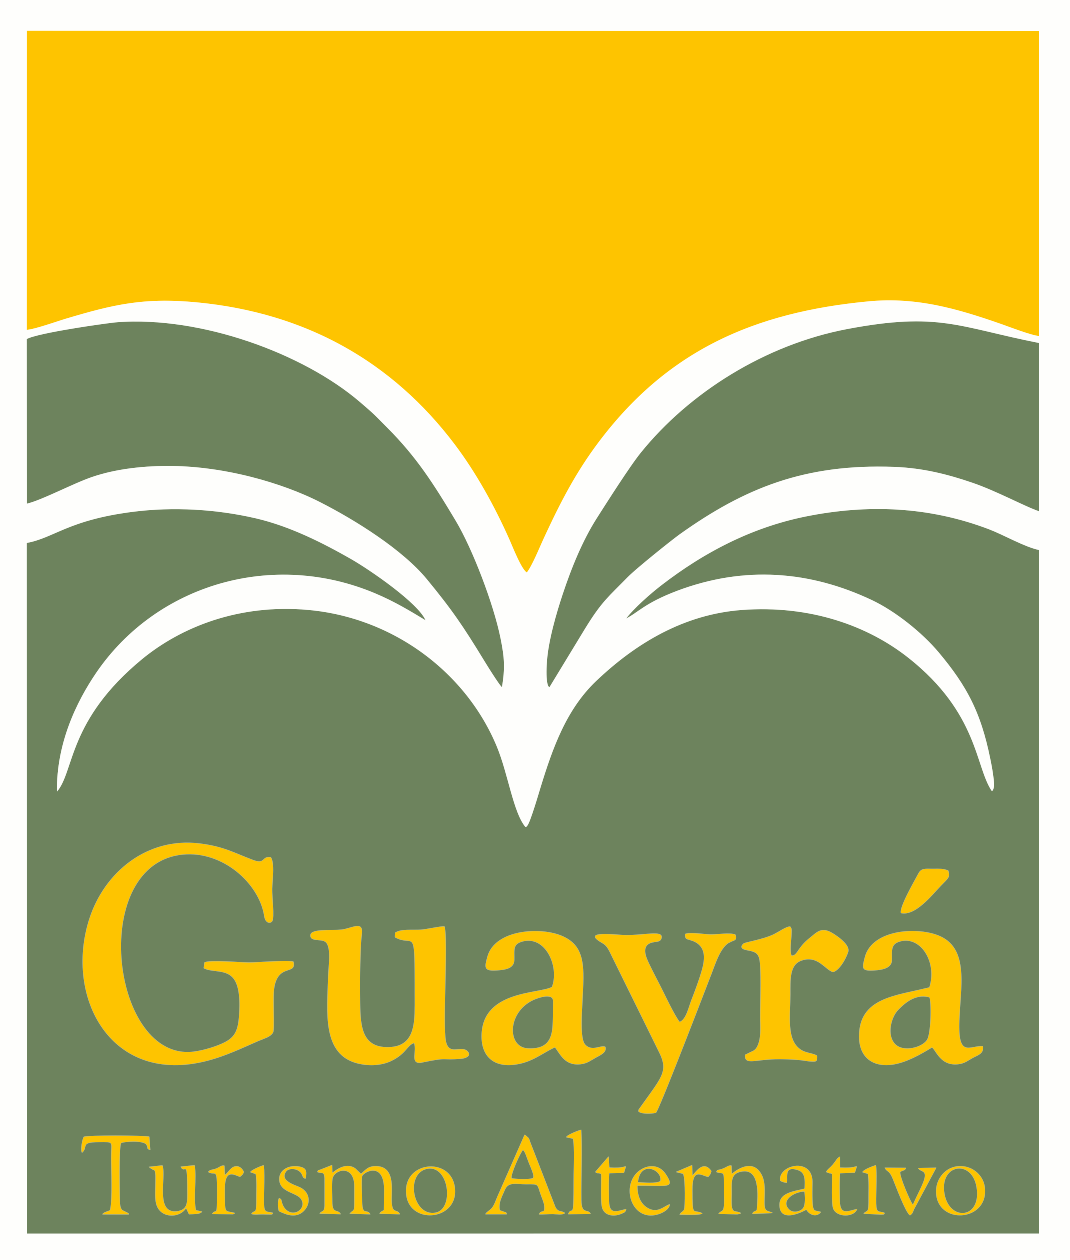 Guayra Turismo Alternativo